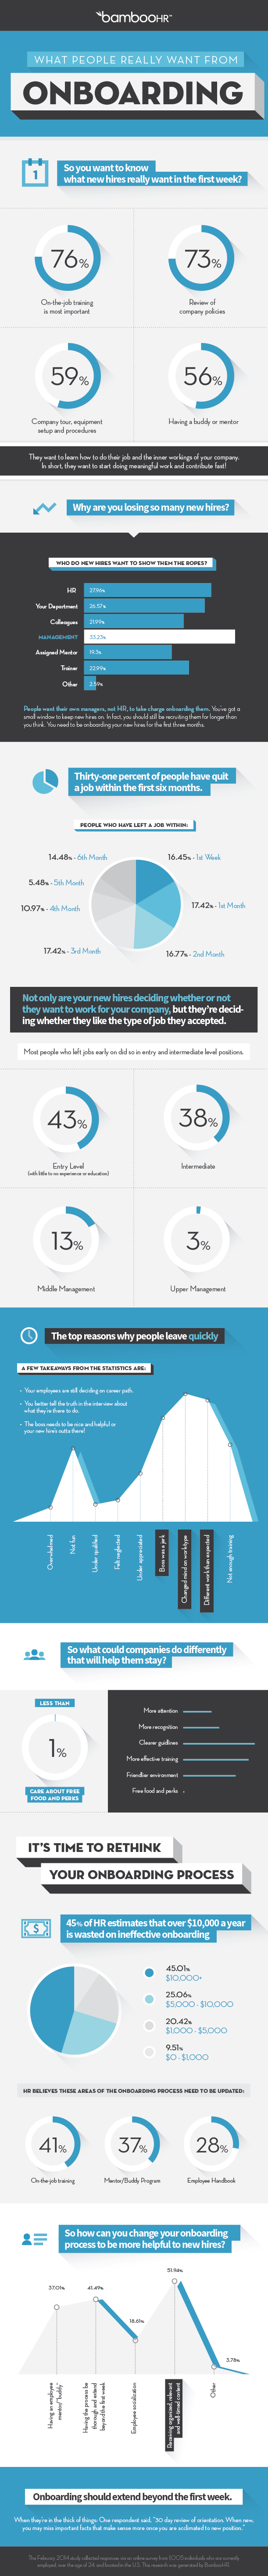 BambooHR-Onboarding-Infographic.png